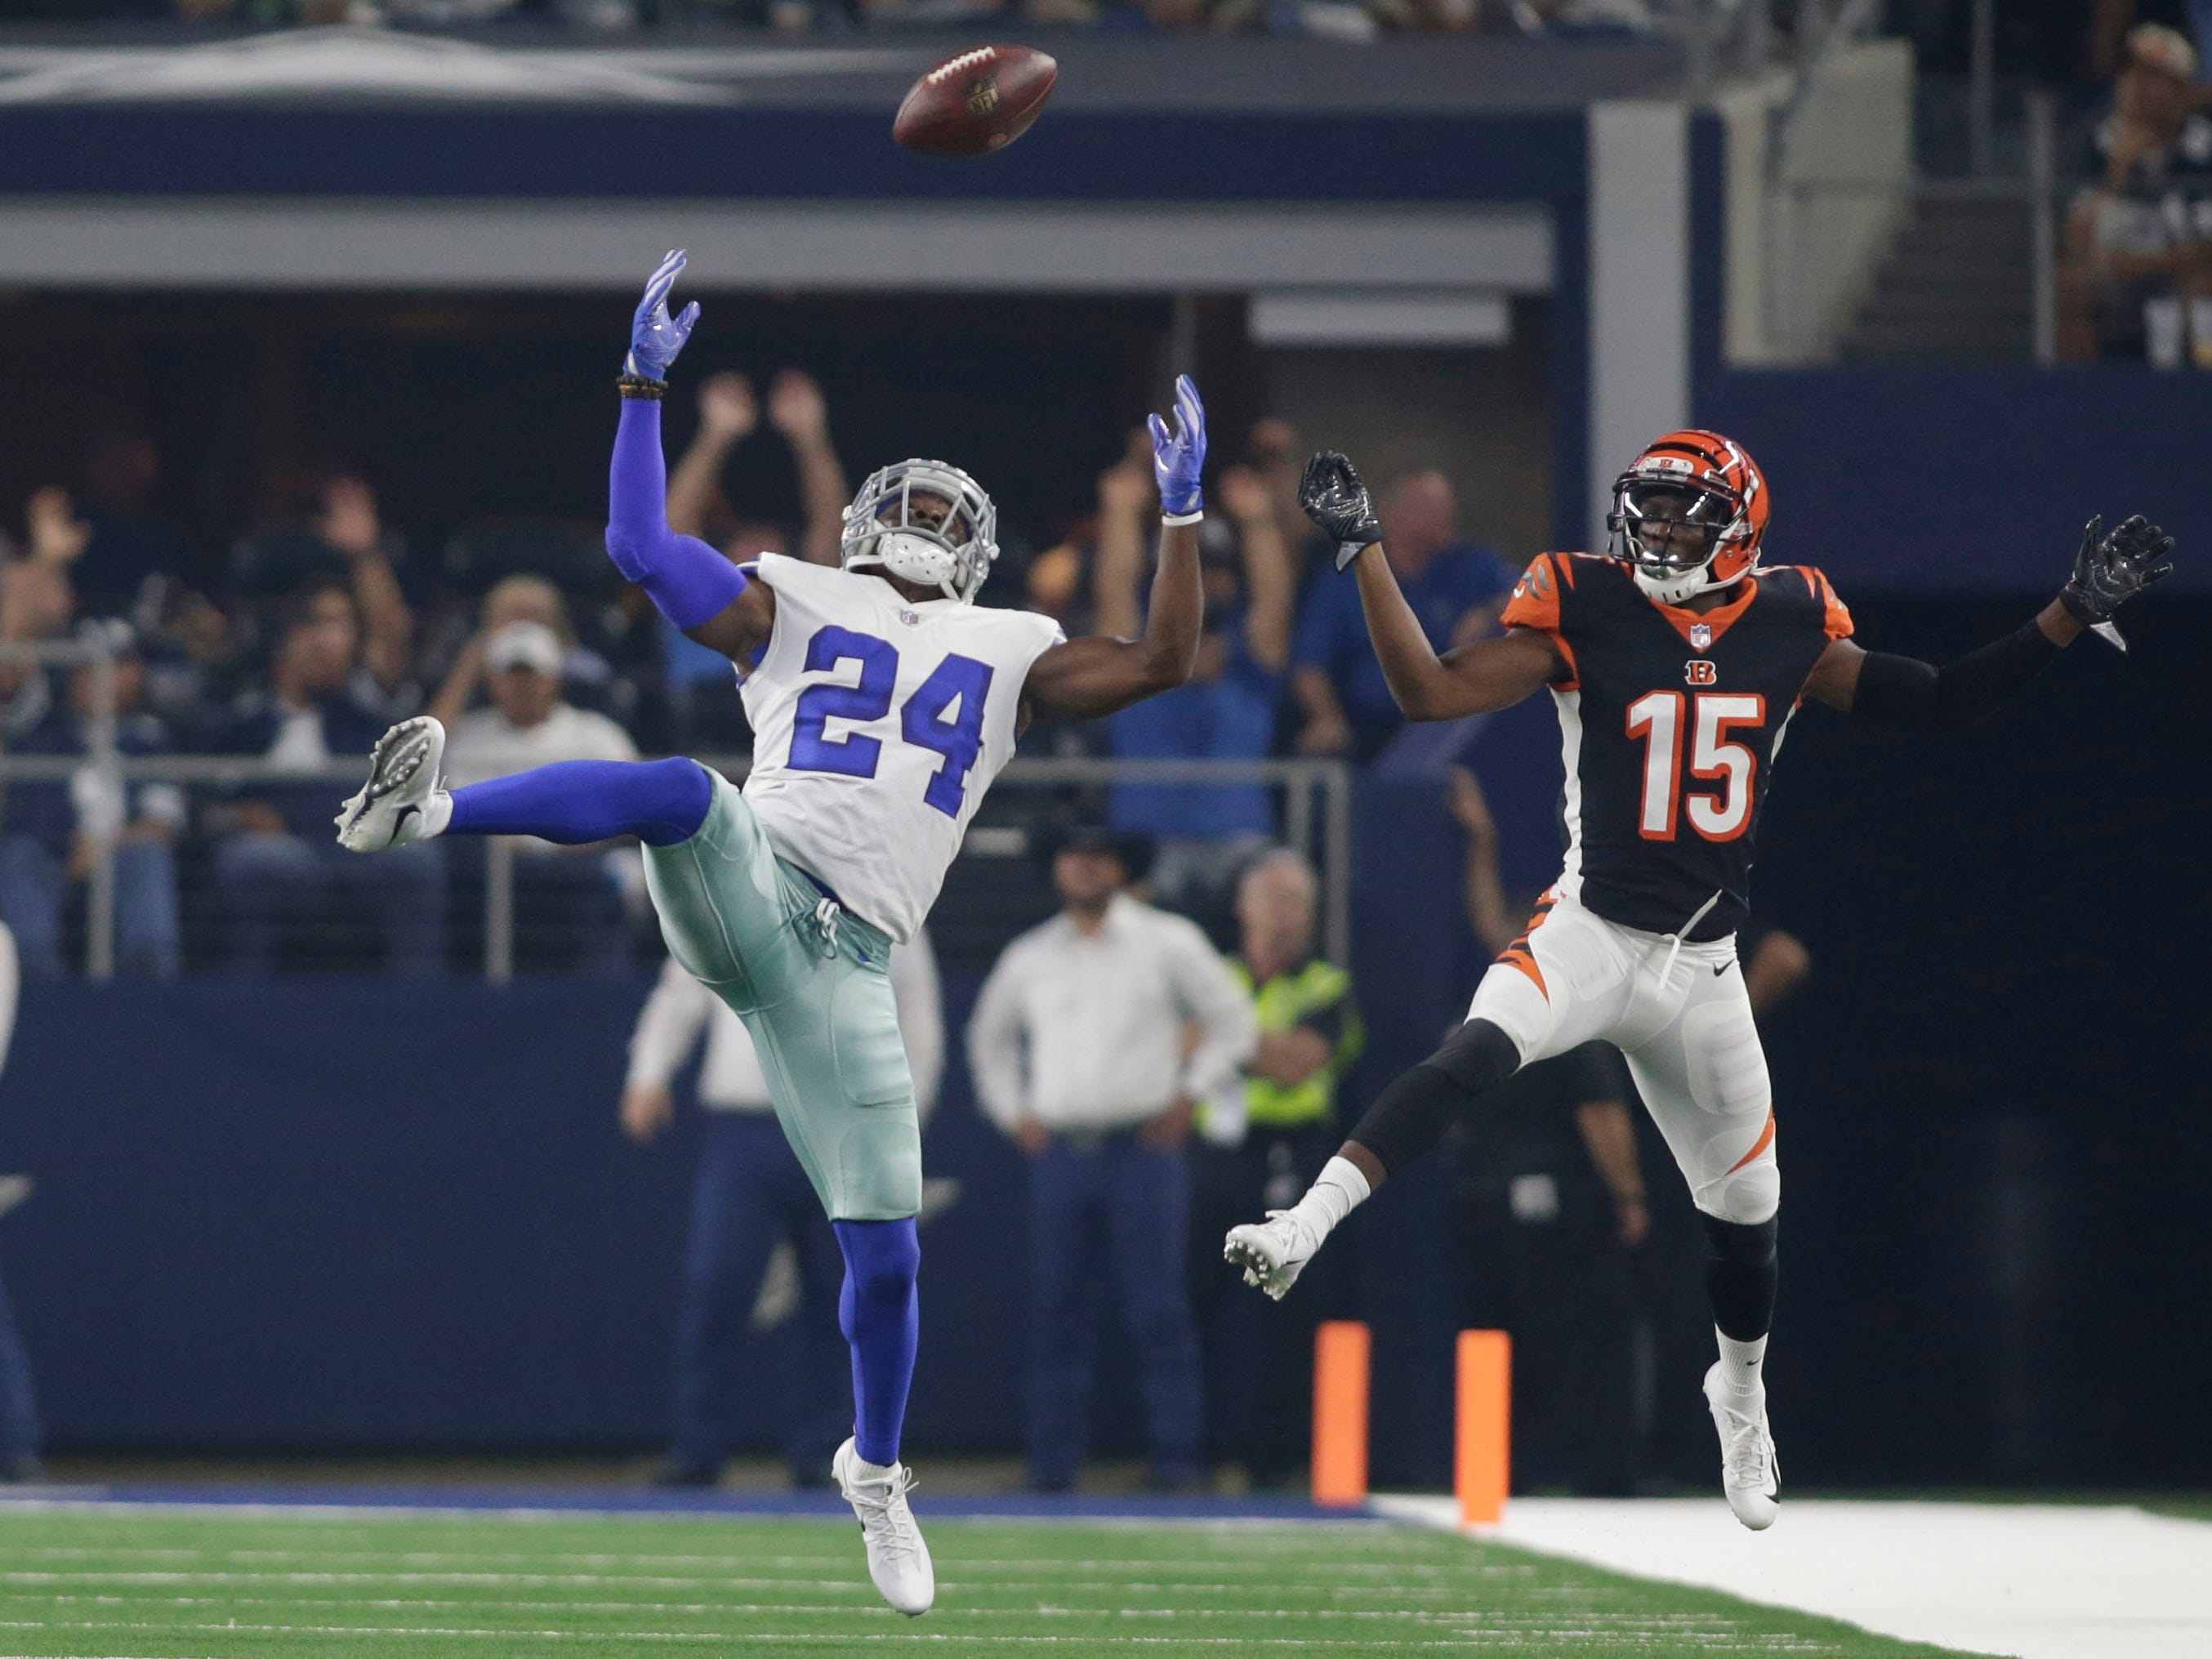 Cowboys cornerback Chidobe Awuzie (24) knocks away and intercepts a pass intended for Bengals receiver John Ross (15) during the second quarter at AT&T Stadium.